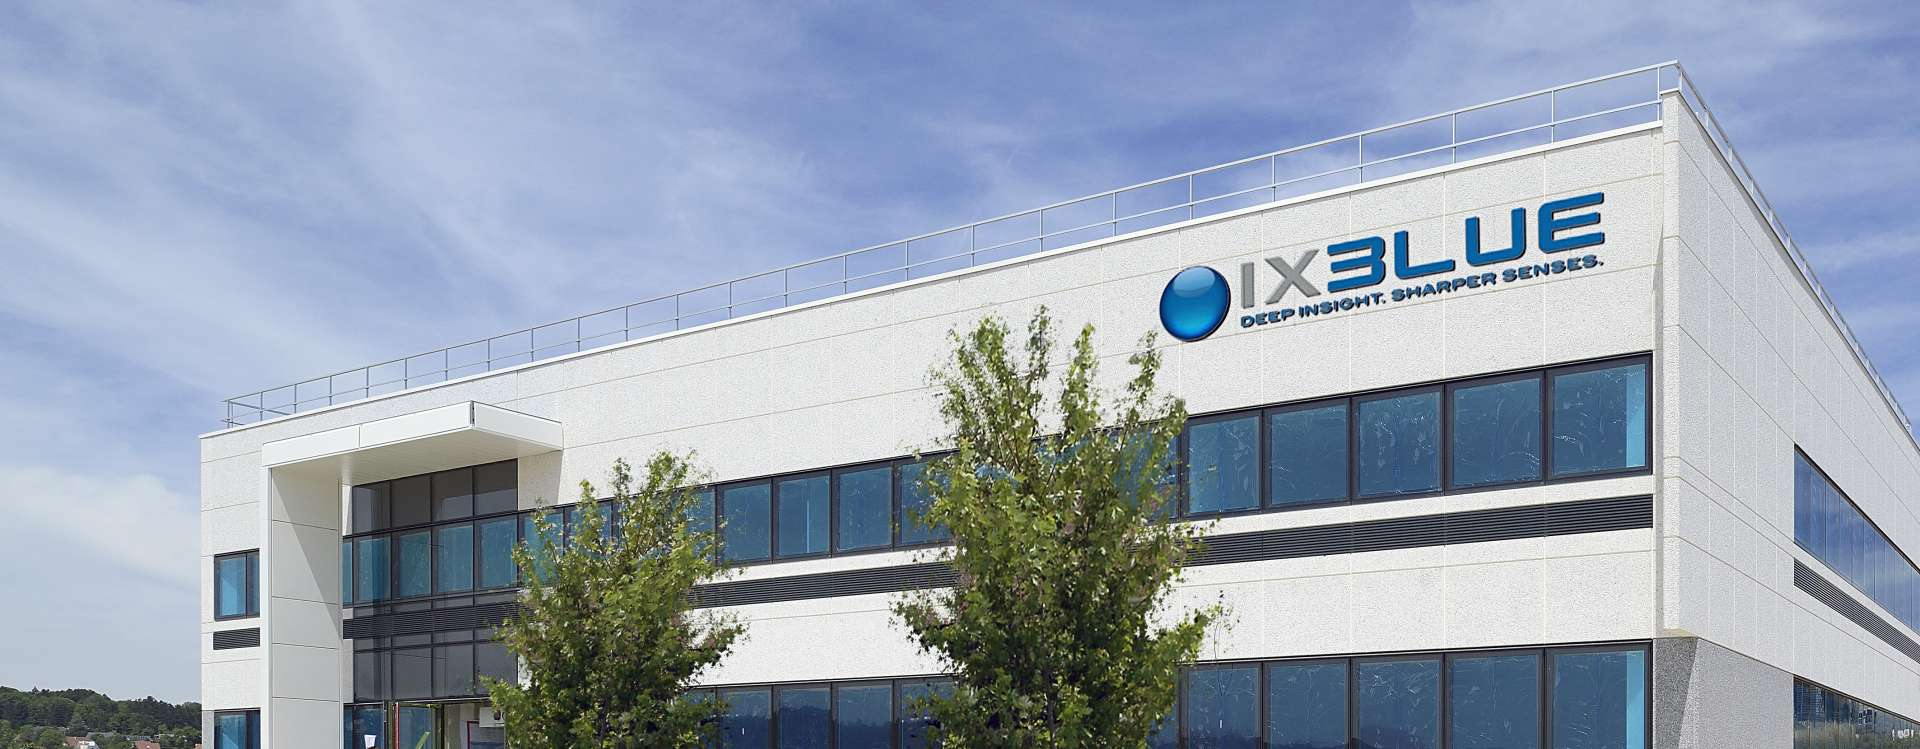 iXBlue in Besançon, the industrial building with high spatial technology